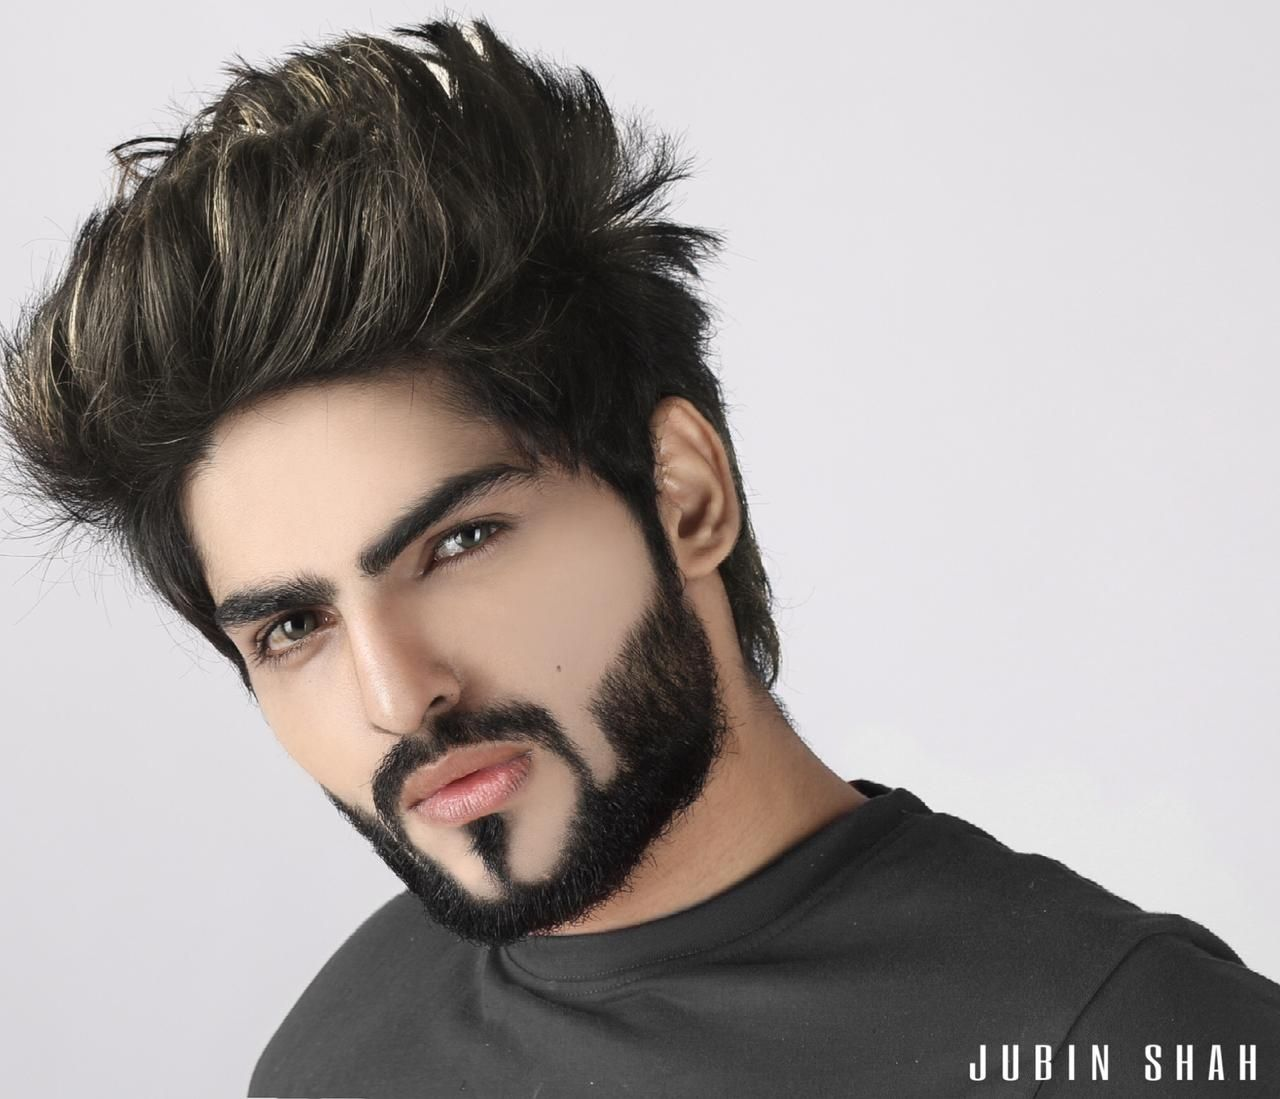 Jubin Shah Knows How To Perfectly Balance Life As An Influencer And Entertainer Hear Style Stylish Boy Haircuts Jubin Shah